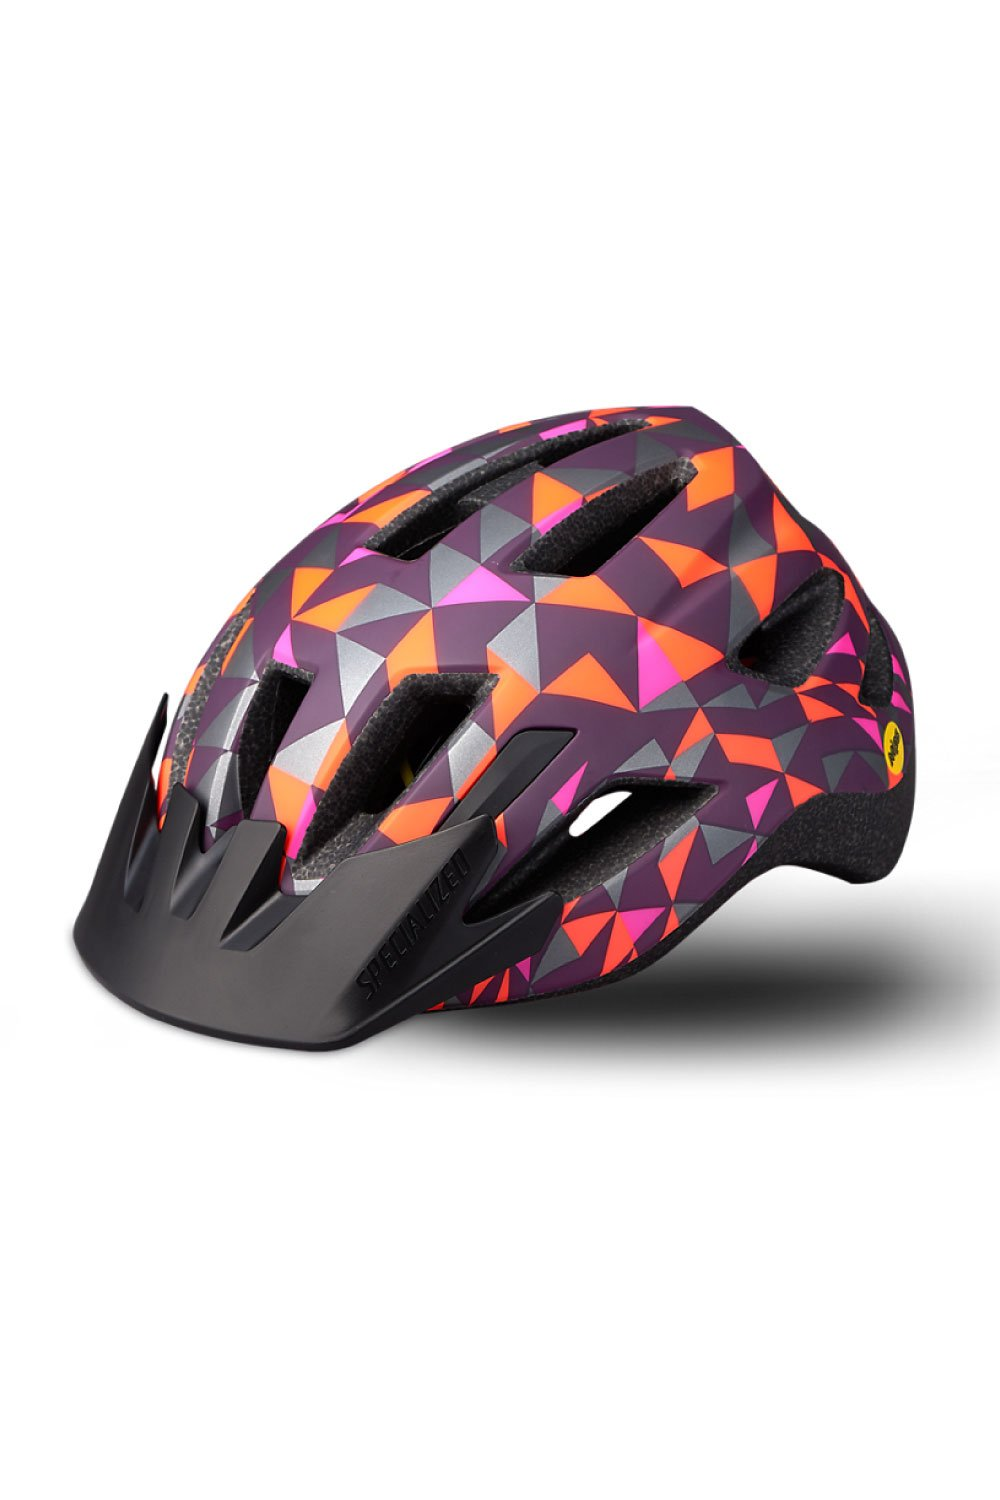 Specialized Shuffle Standard Buckle Kids Mountain Bike Helmet (4-7 years old)